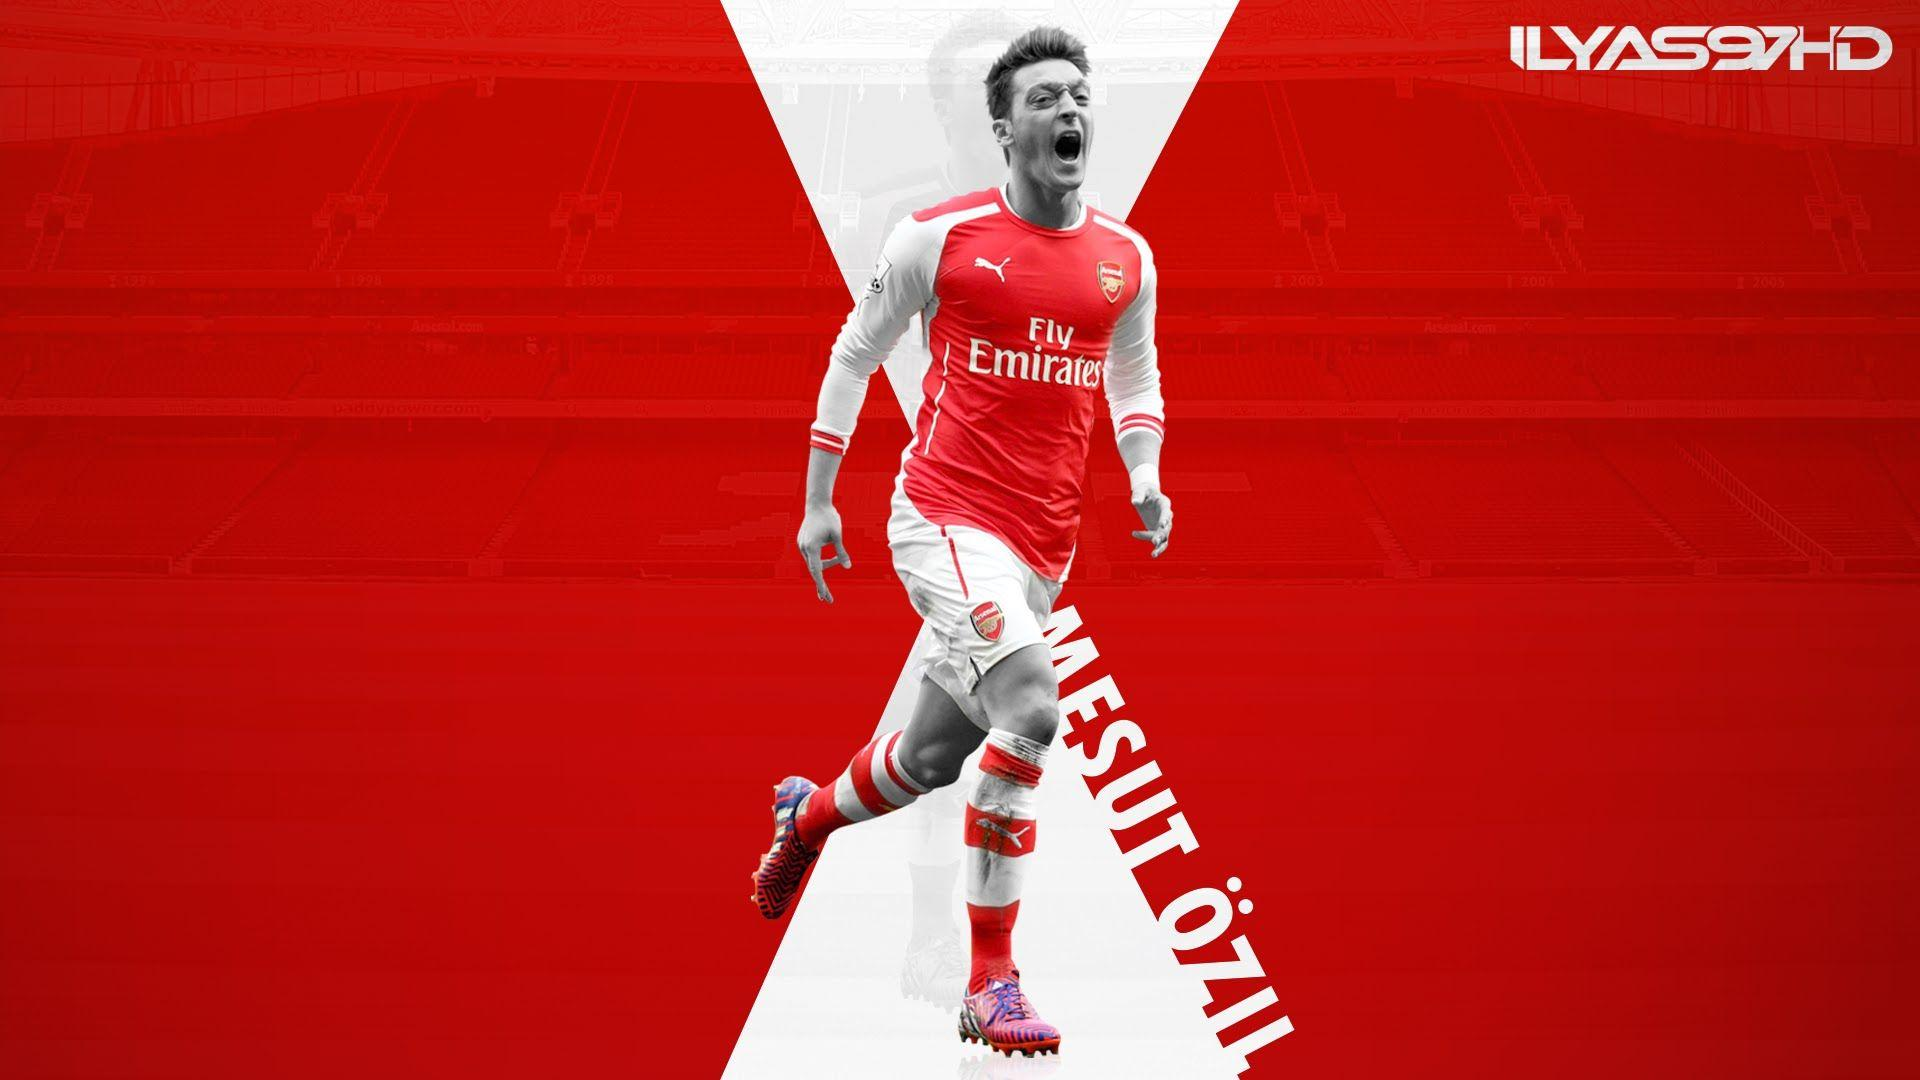 Özil Arsenal Wallpapers